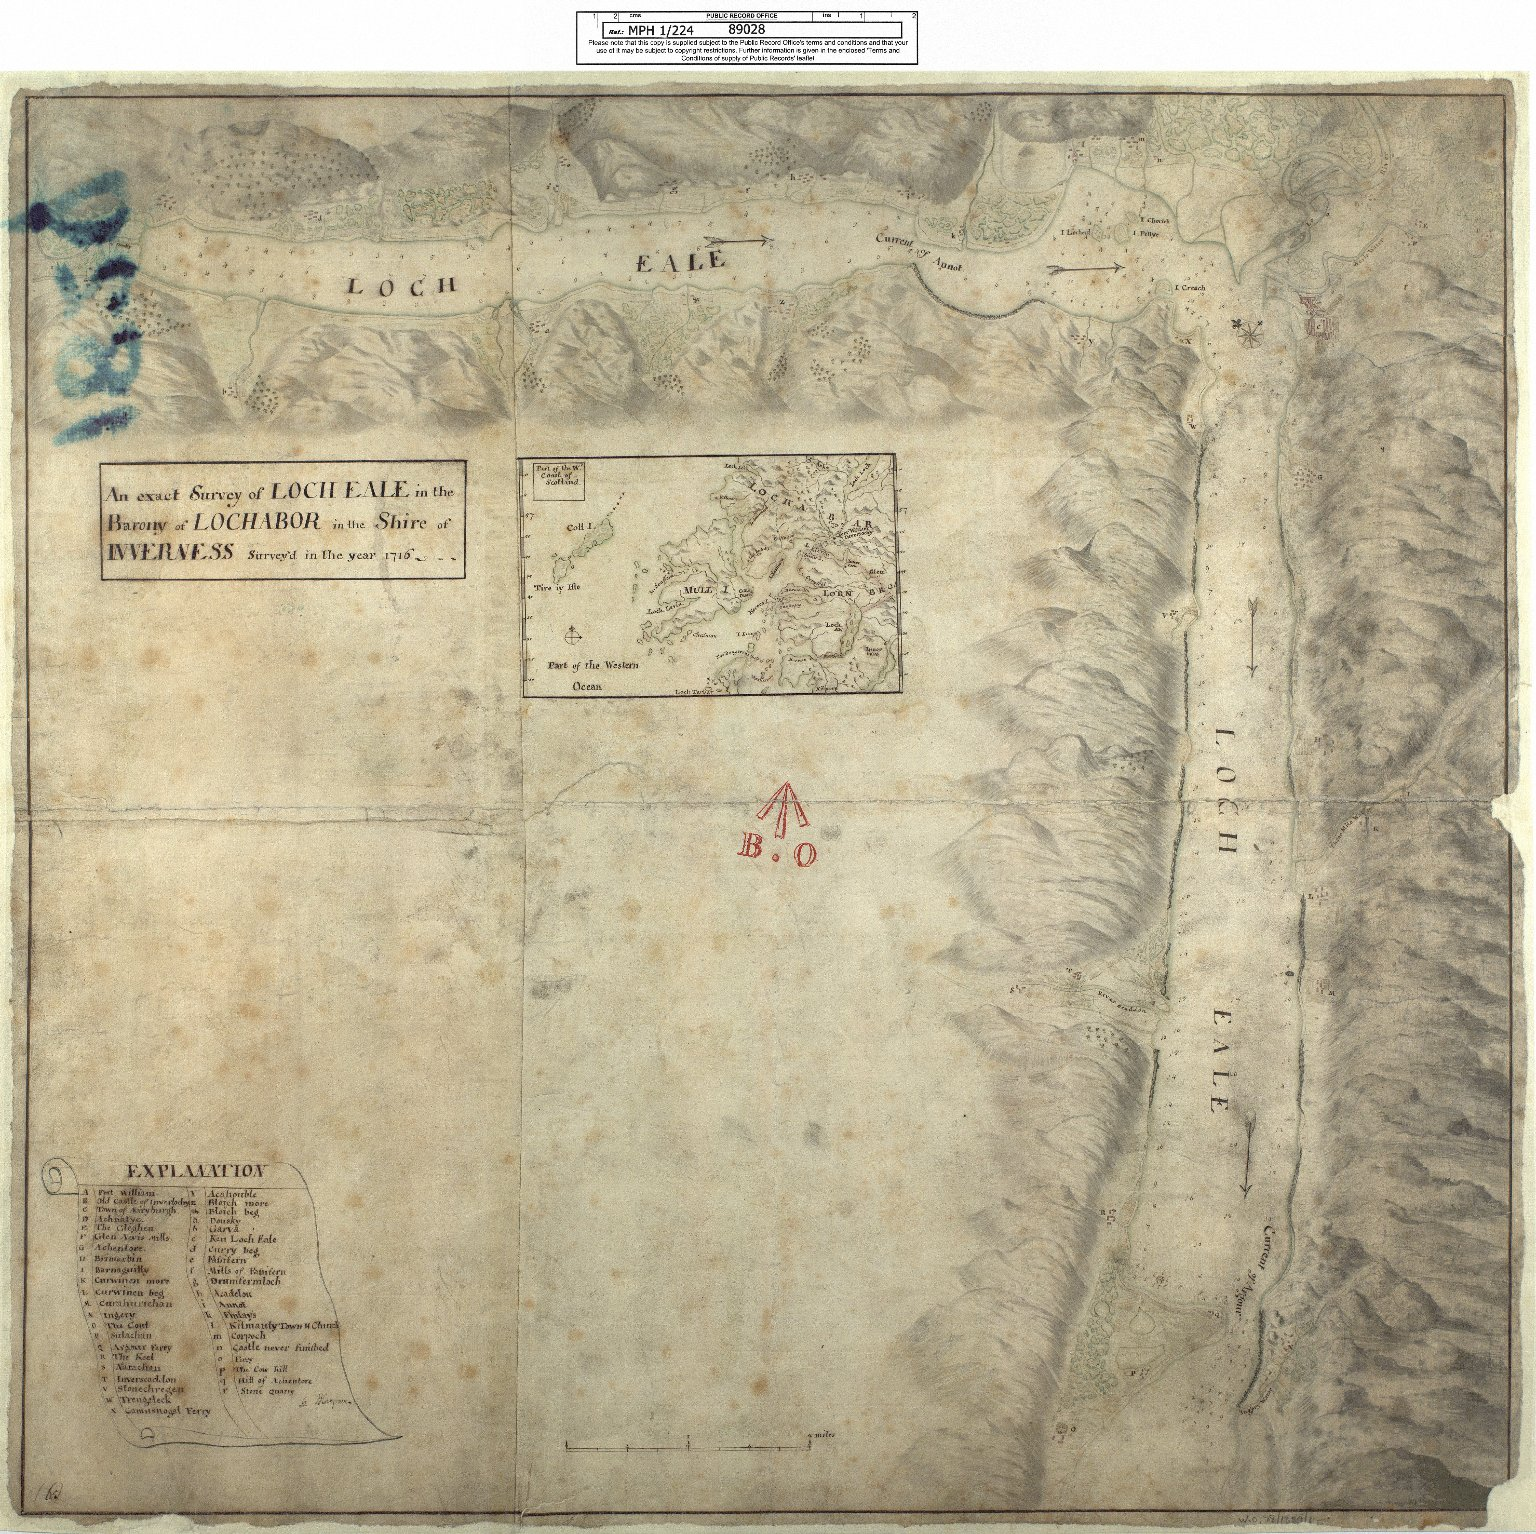 An exact Survey of Loch Eale in the Barony of Lochabor in the Shire of Inverness Survey'd in the year 1716 [1 of 1]